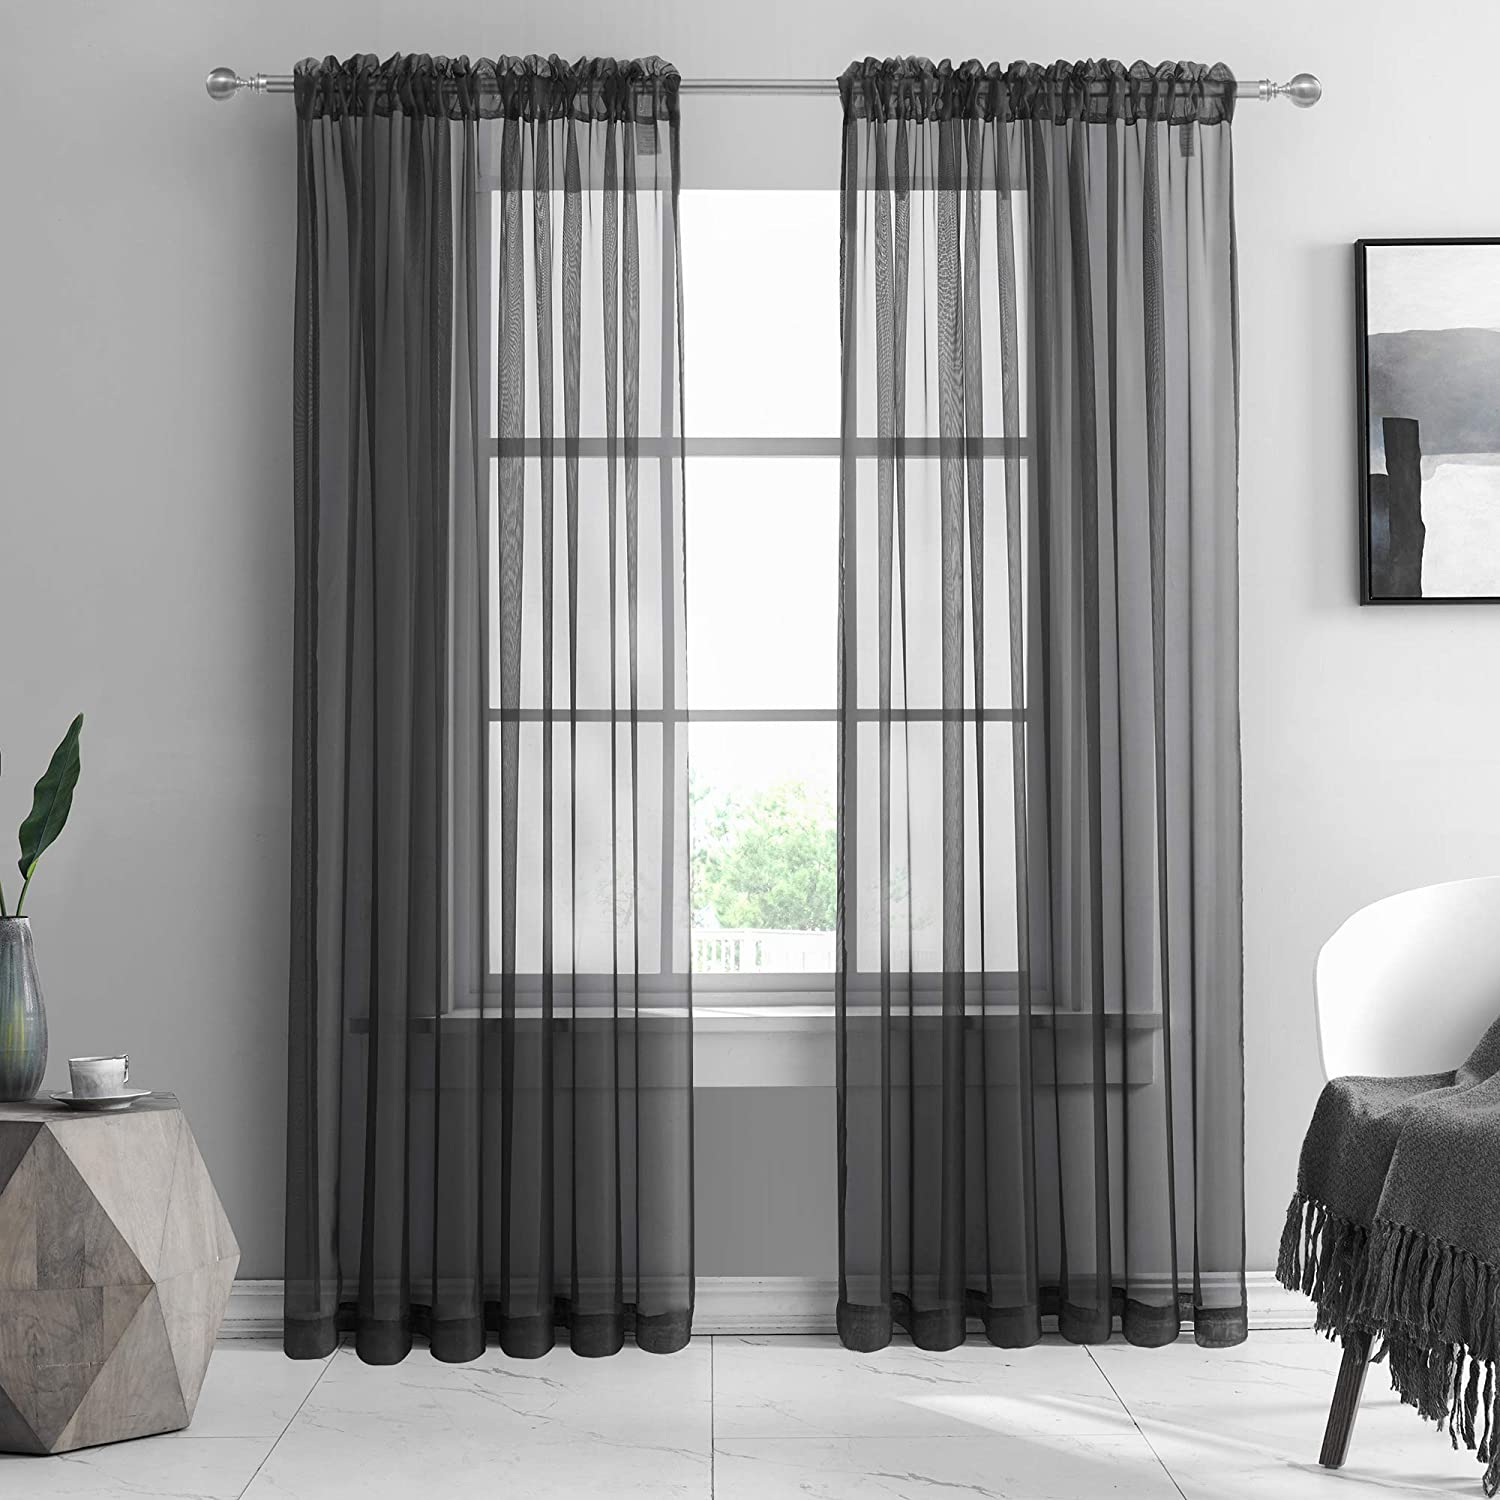 KEQIAOSUOCAI Sheer Black Curtains 84 Inch for Dining Living Room Soft Voile Rod Pocket Sheer Panels for Backdrop Bedroom Canopy 52Wx84L Set of 2